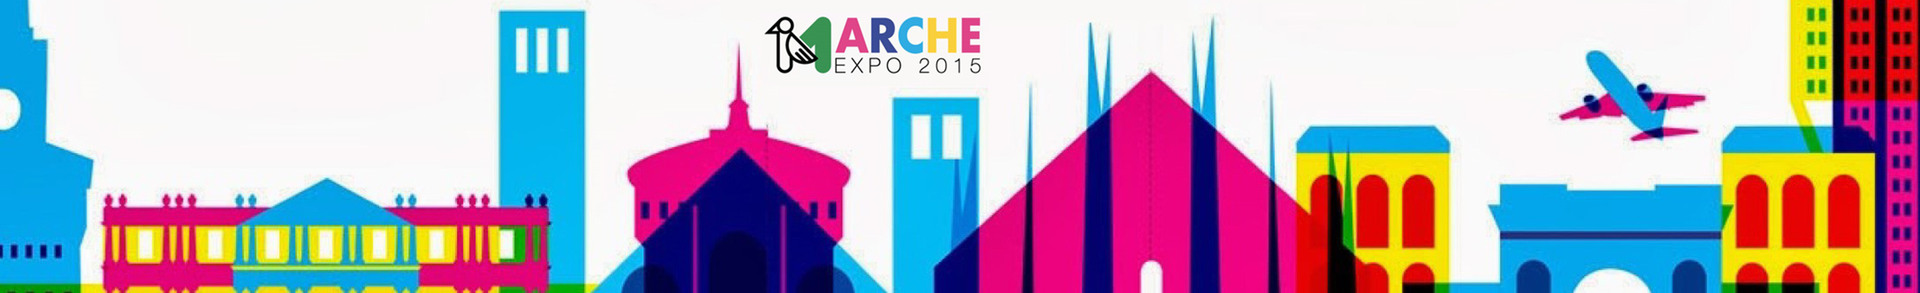 MarchExpo 2015 @ Elica showroom